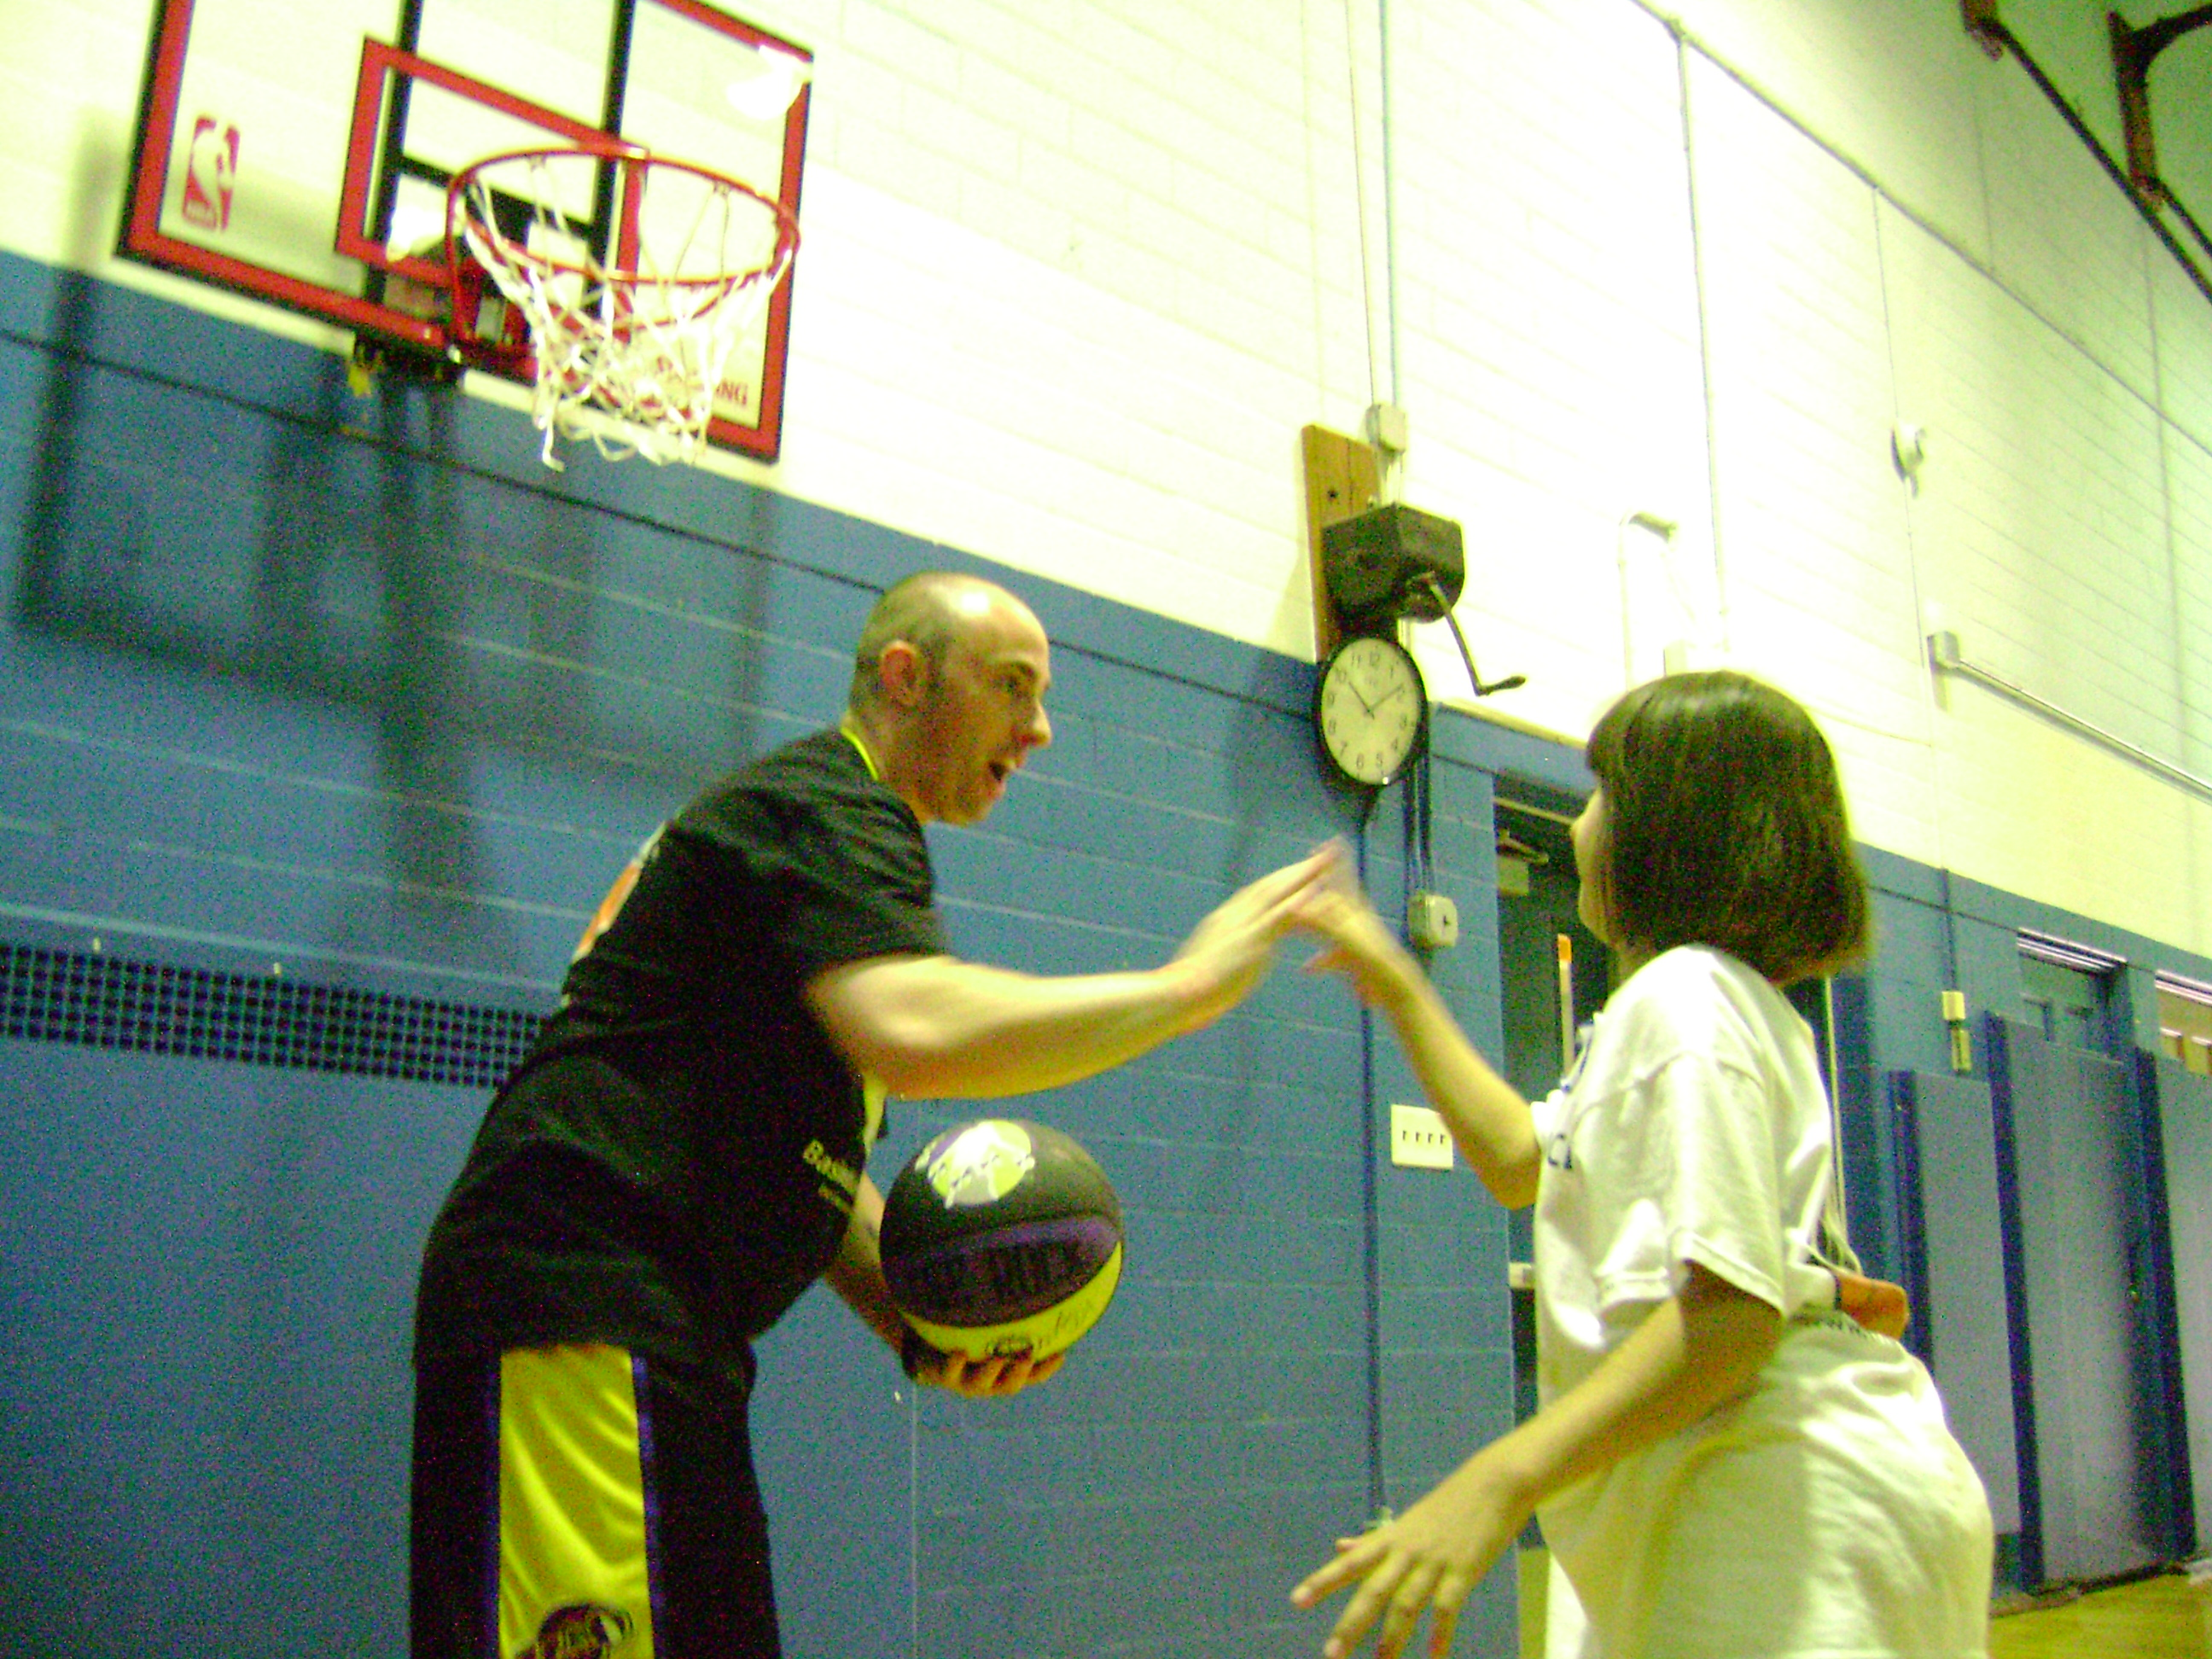 Mike Simmel Basketball Training